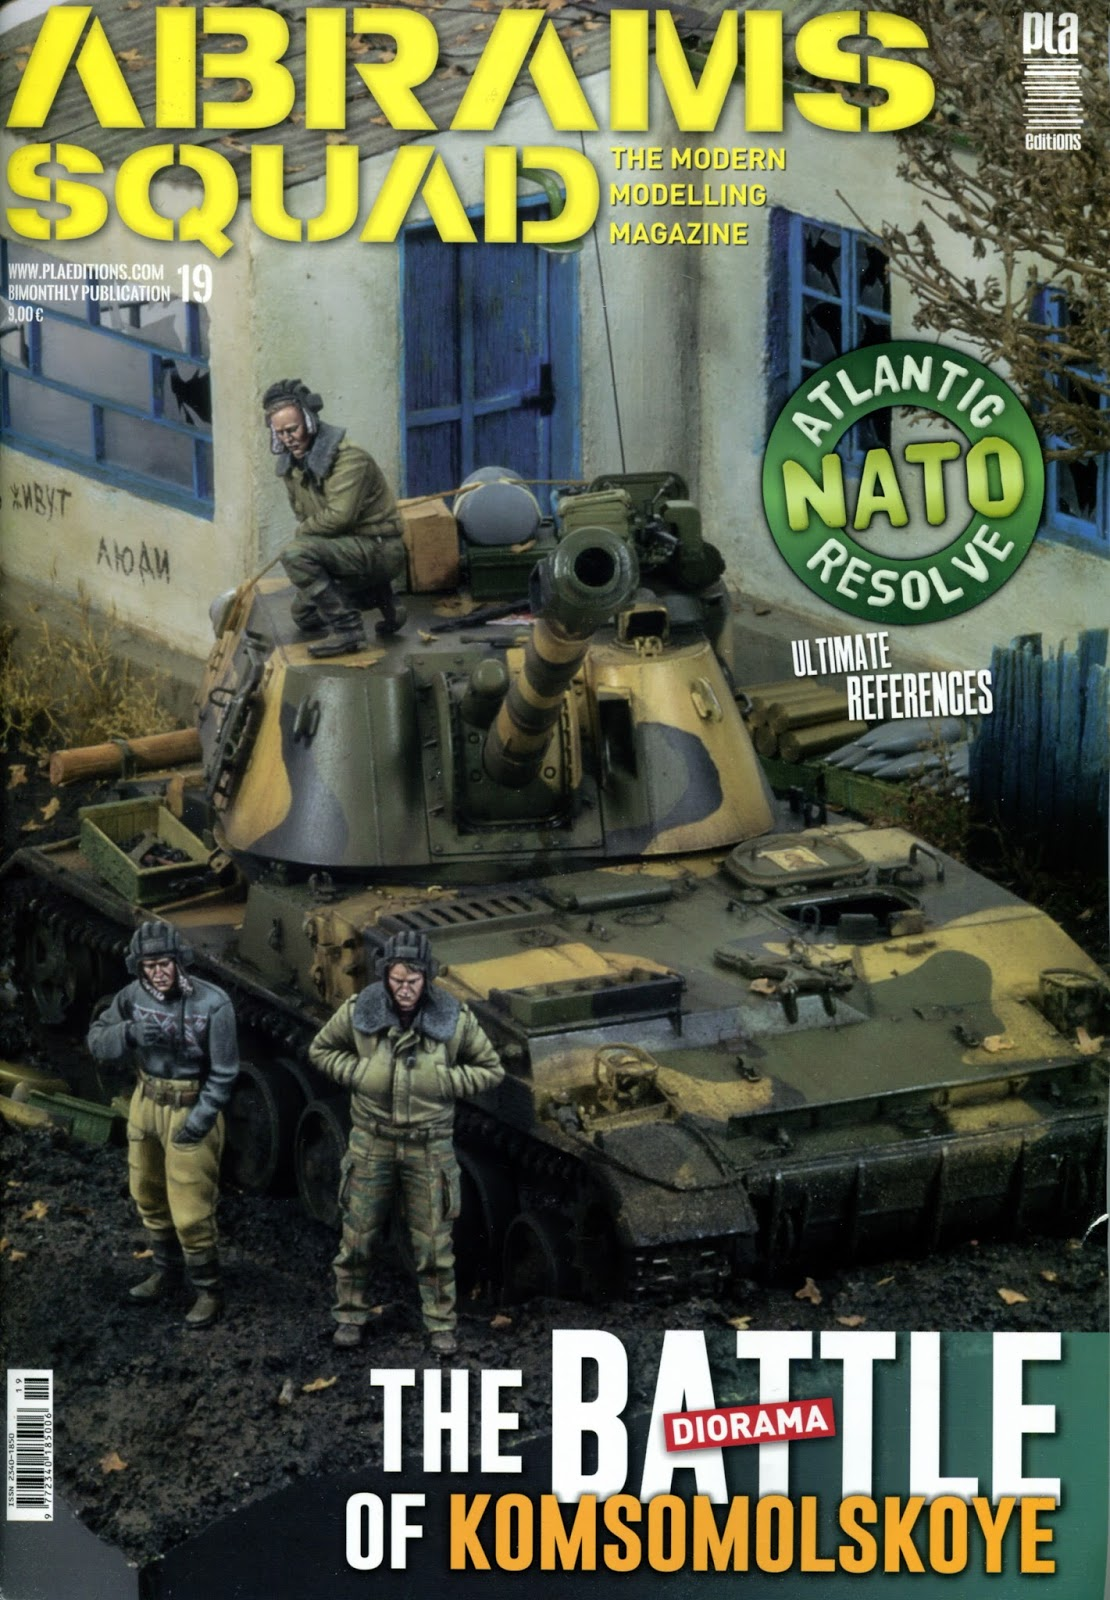 Military scale modeling: News, sites, discussion K1603